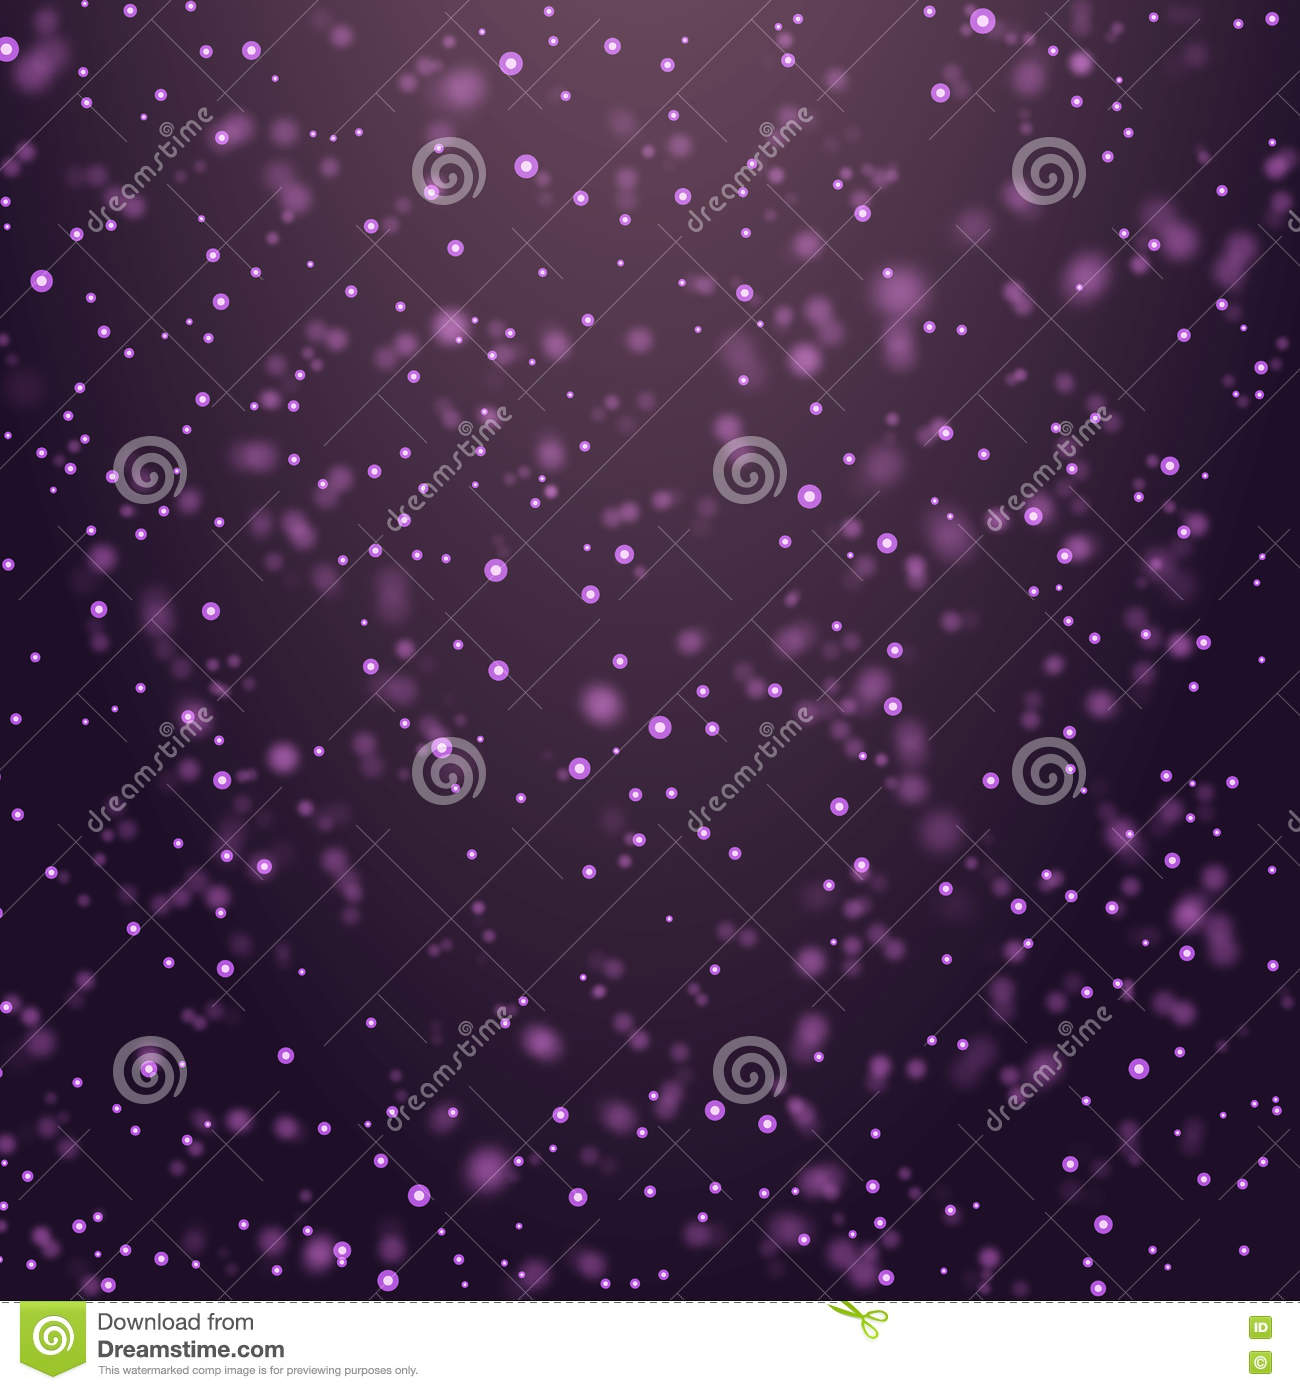 Vector illustration Christmas magic glittering color light card background - new year space shimmering particle fly.